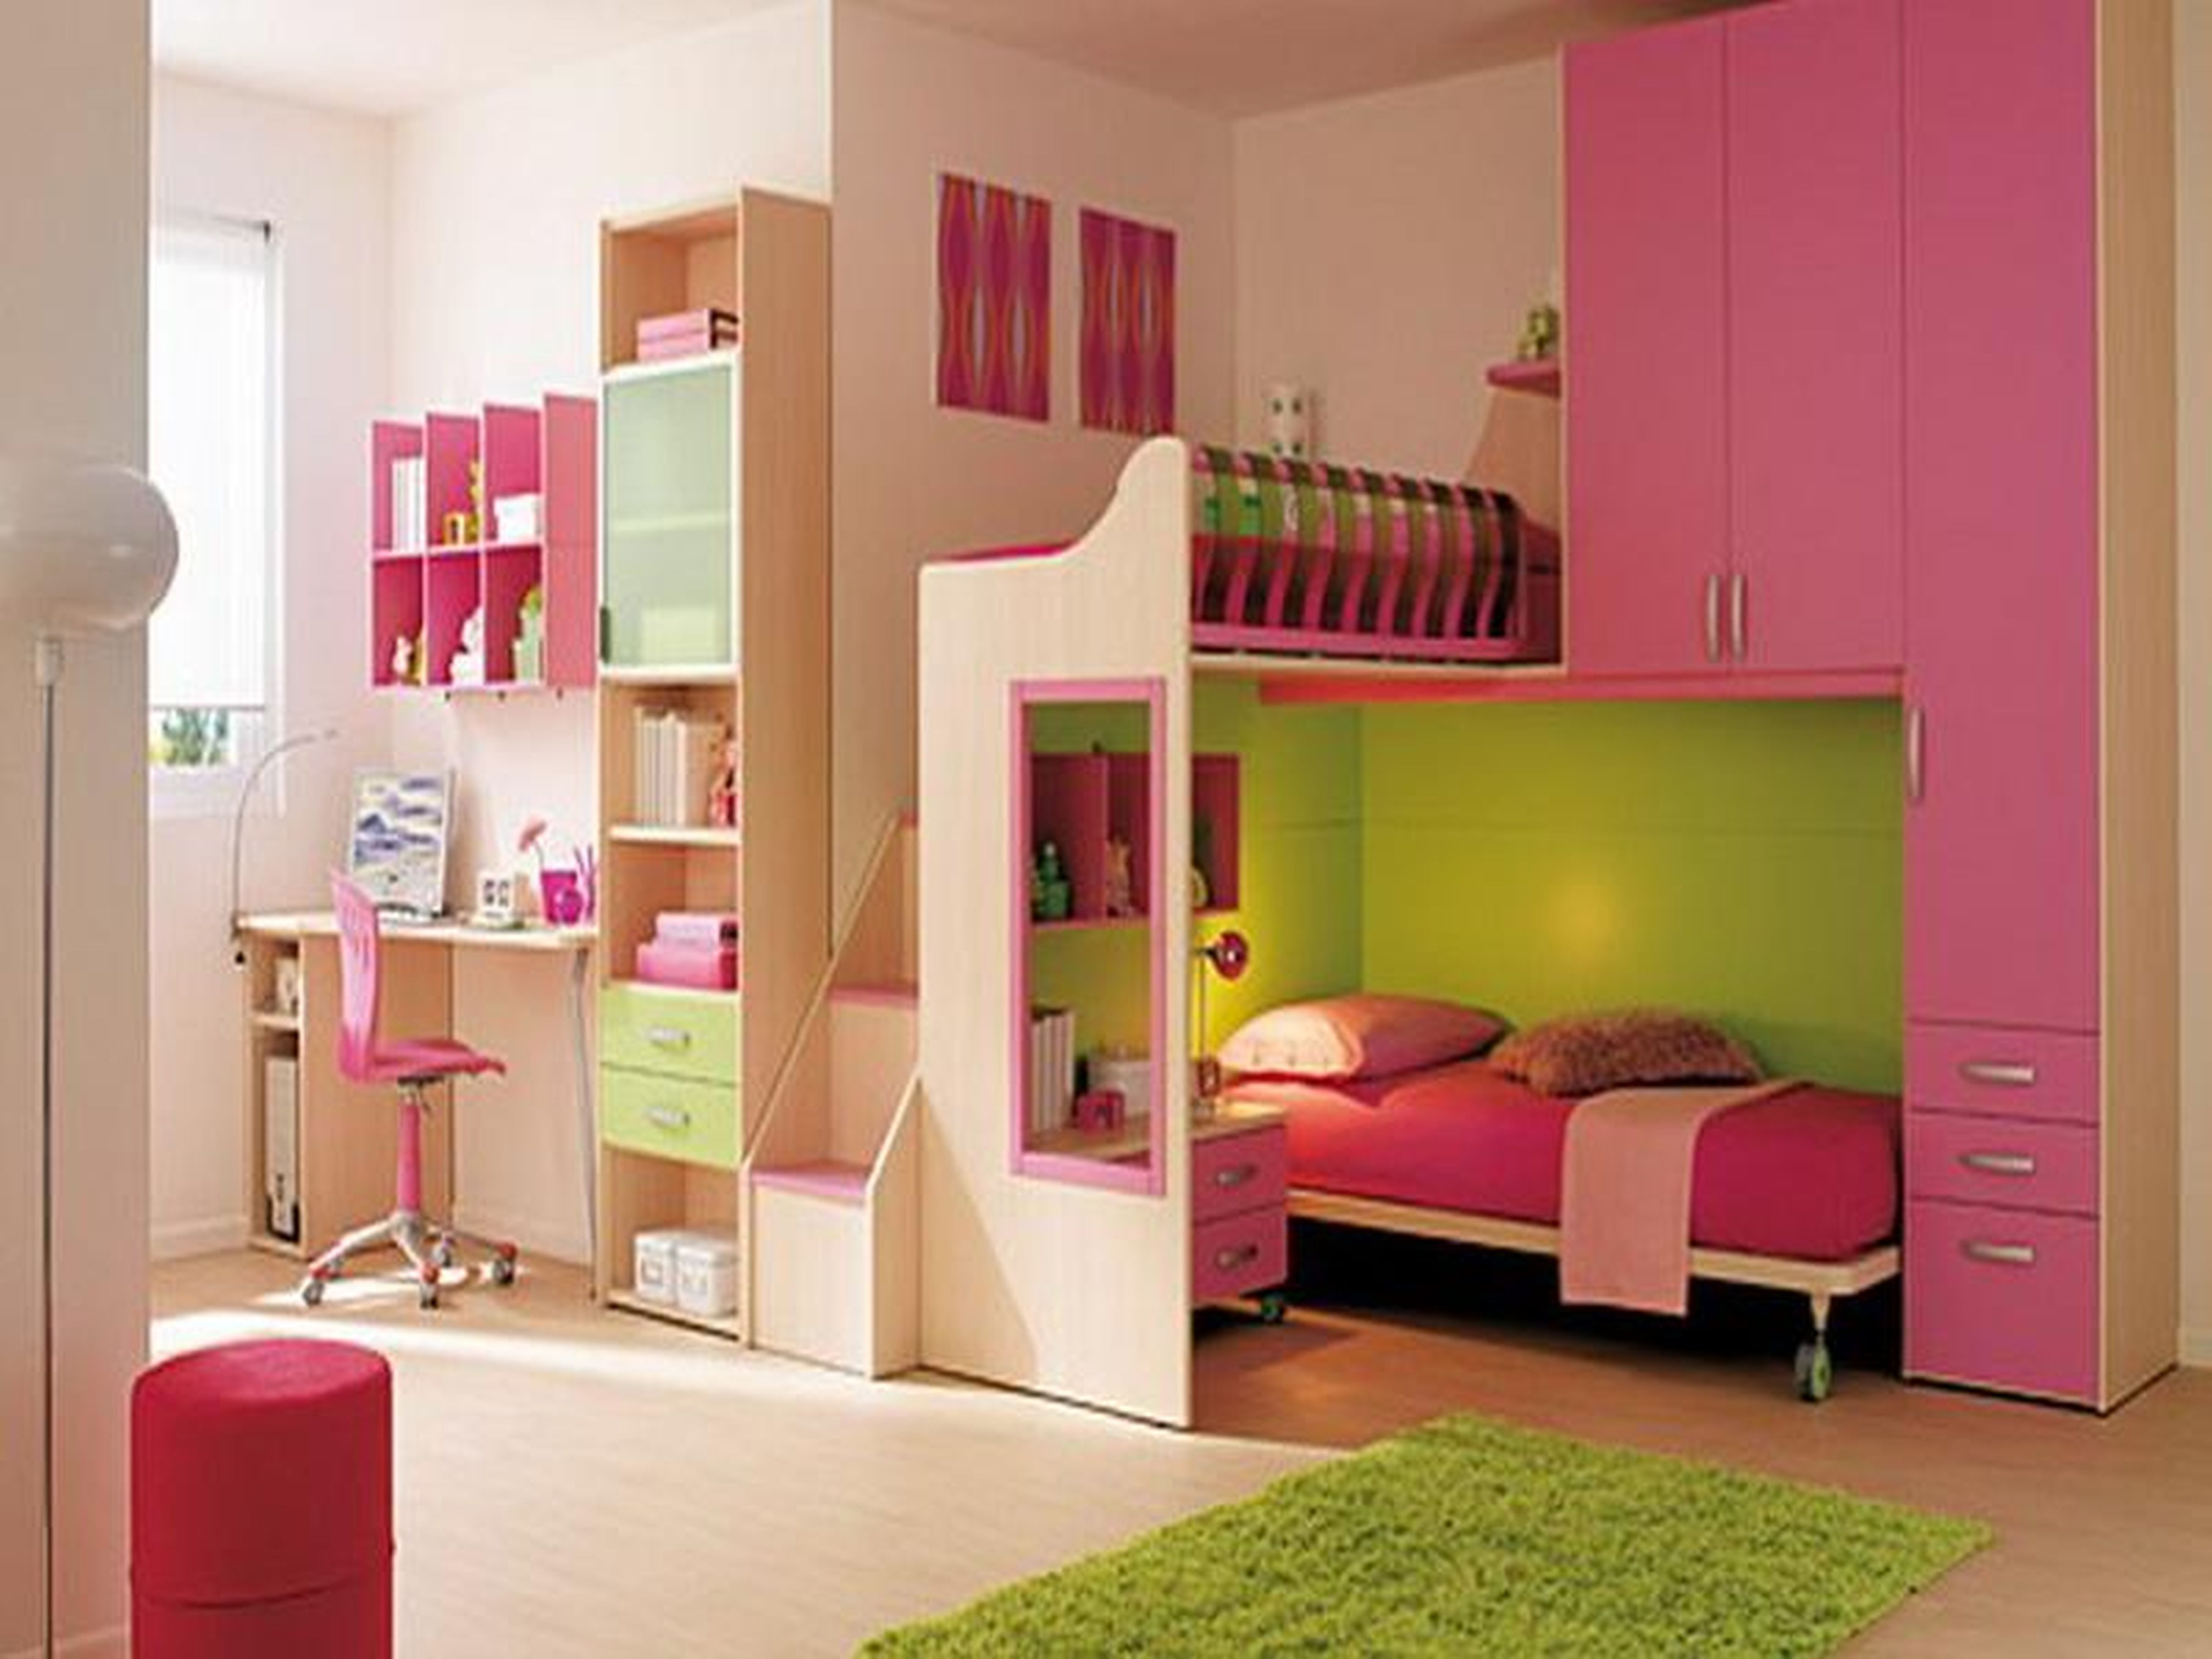 ikea bedroom furniture for small spaces photo - 4